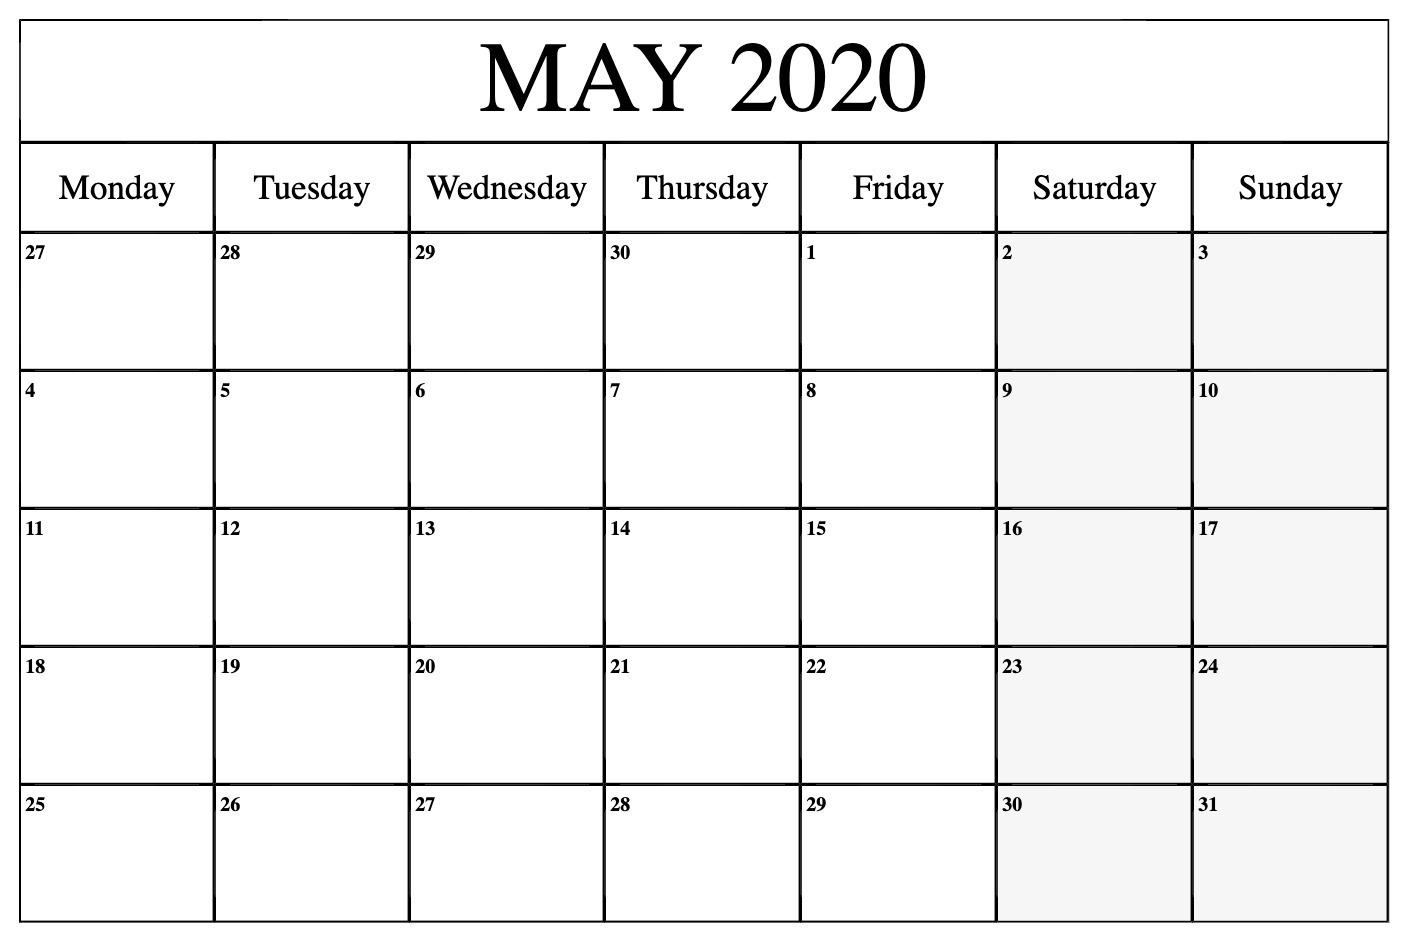 May 2020 Calendar Printable Template With Holidays